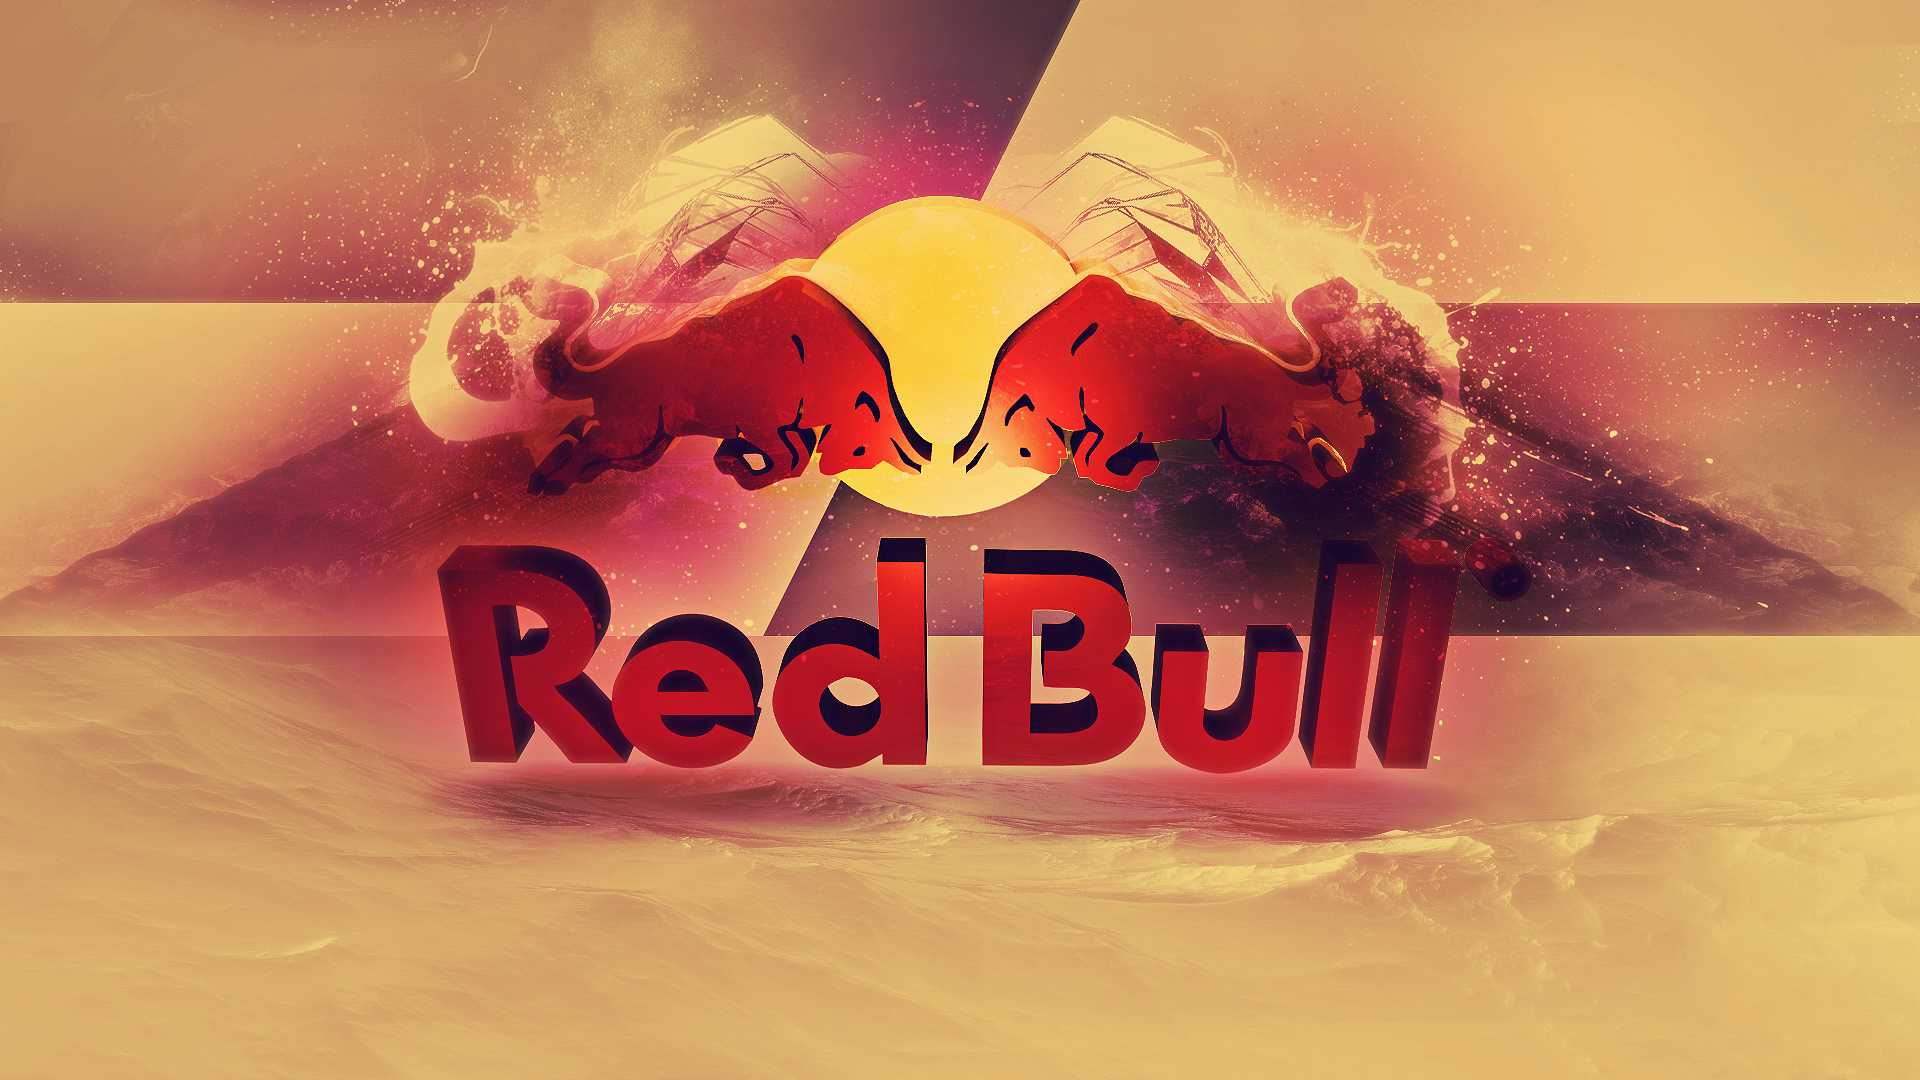 Red Bull, 4K Ultra HD Wallpapers For Free | BsnSCB